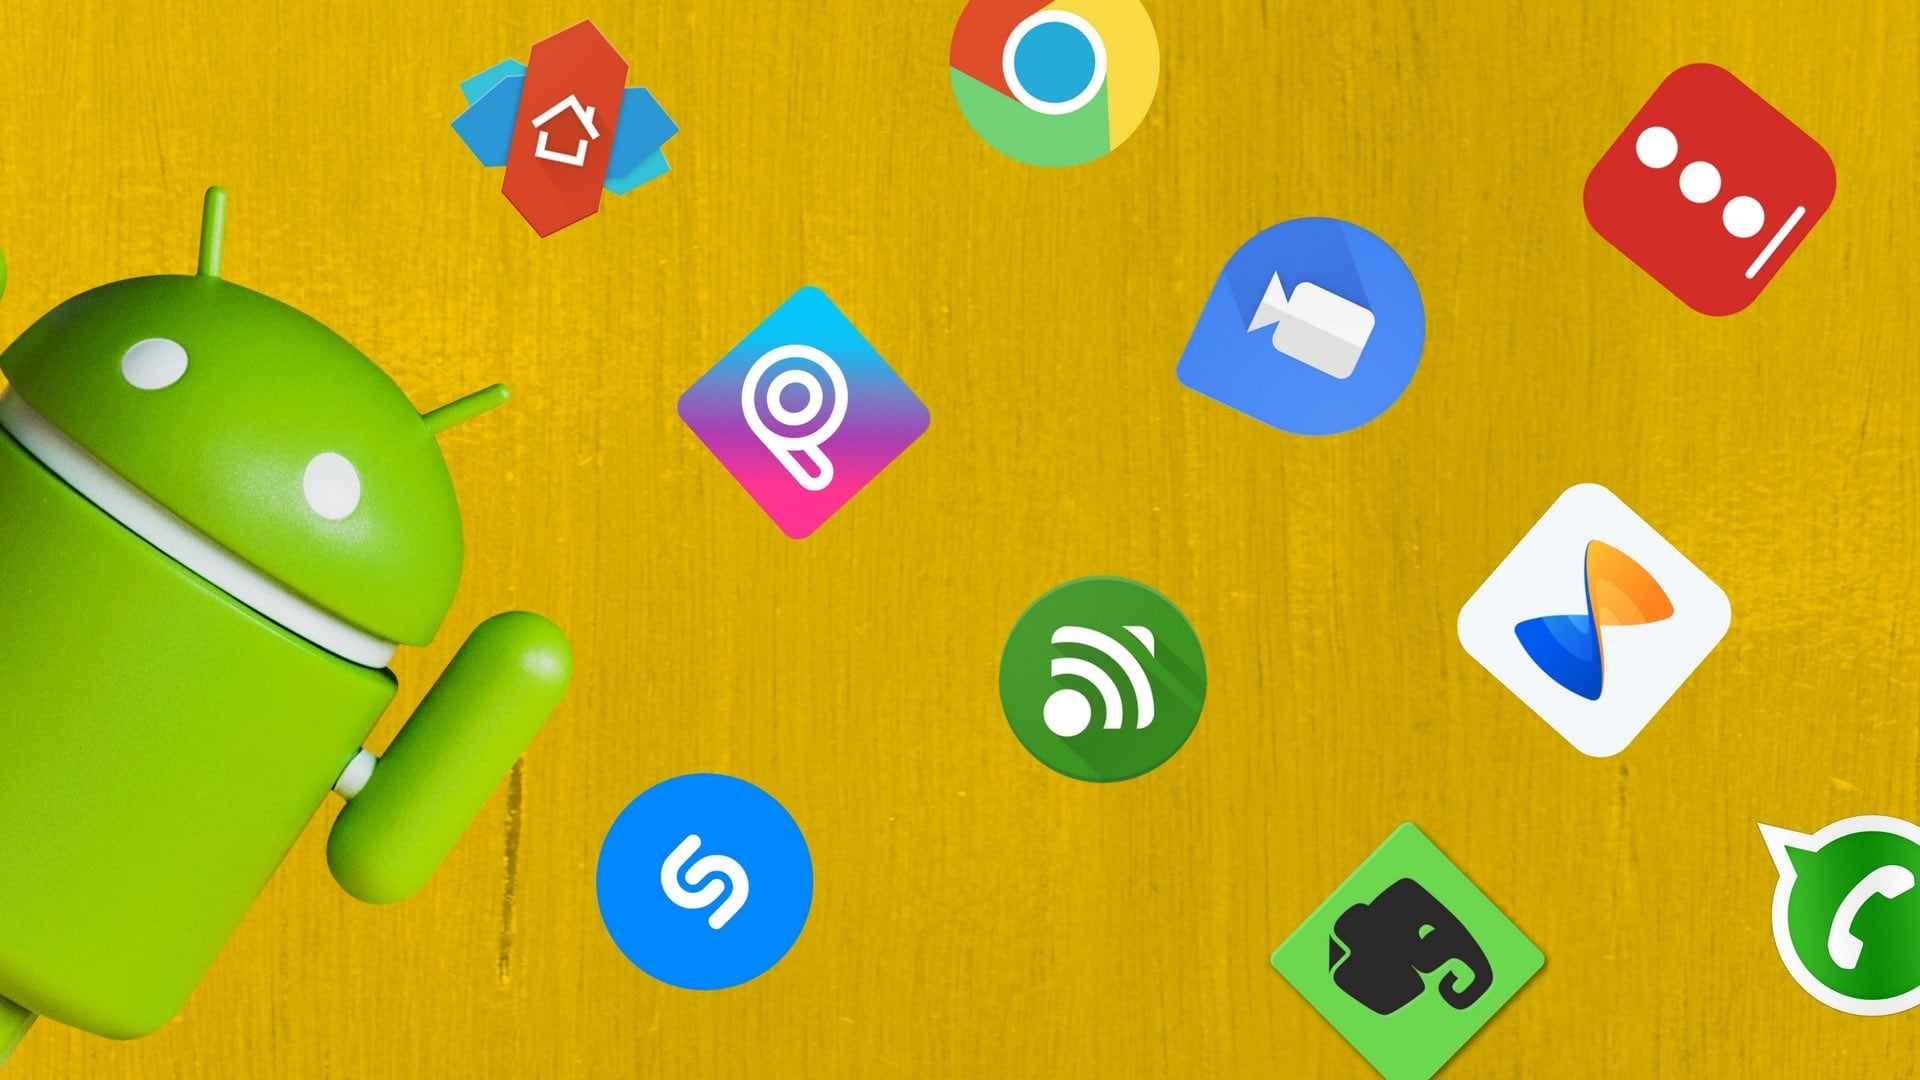 scaricare app android senza Google Play